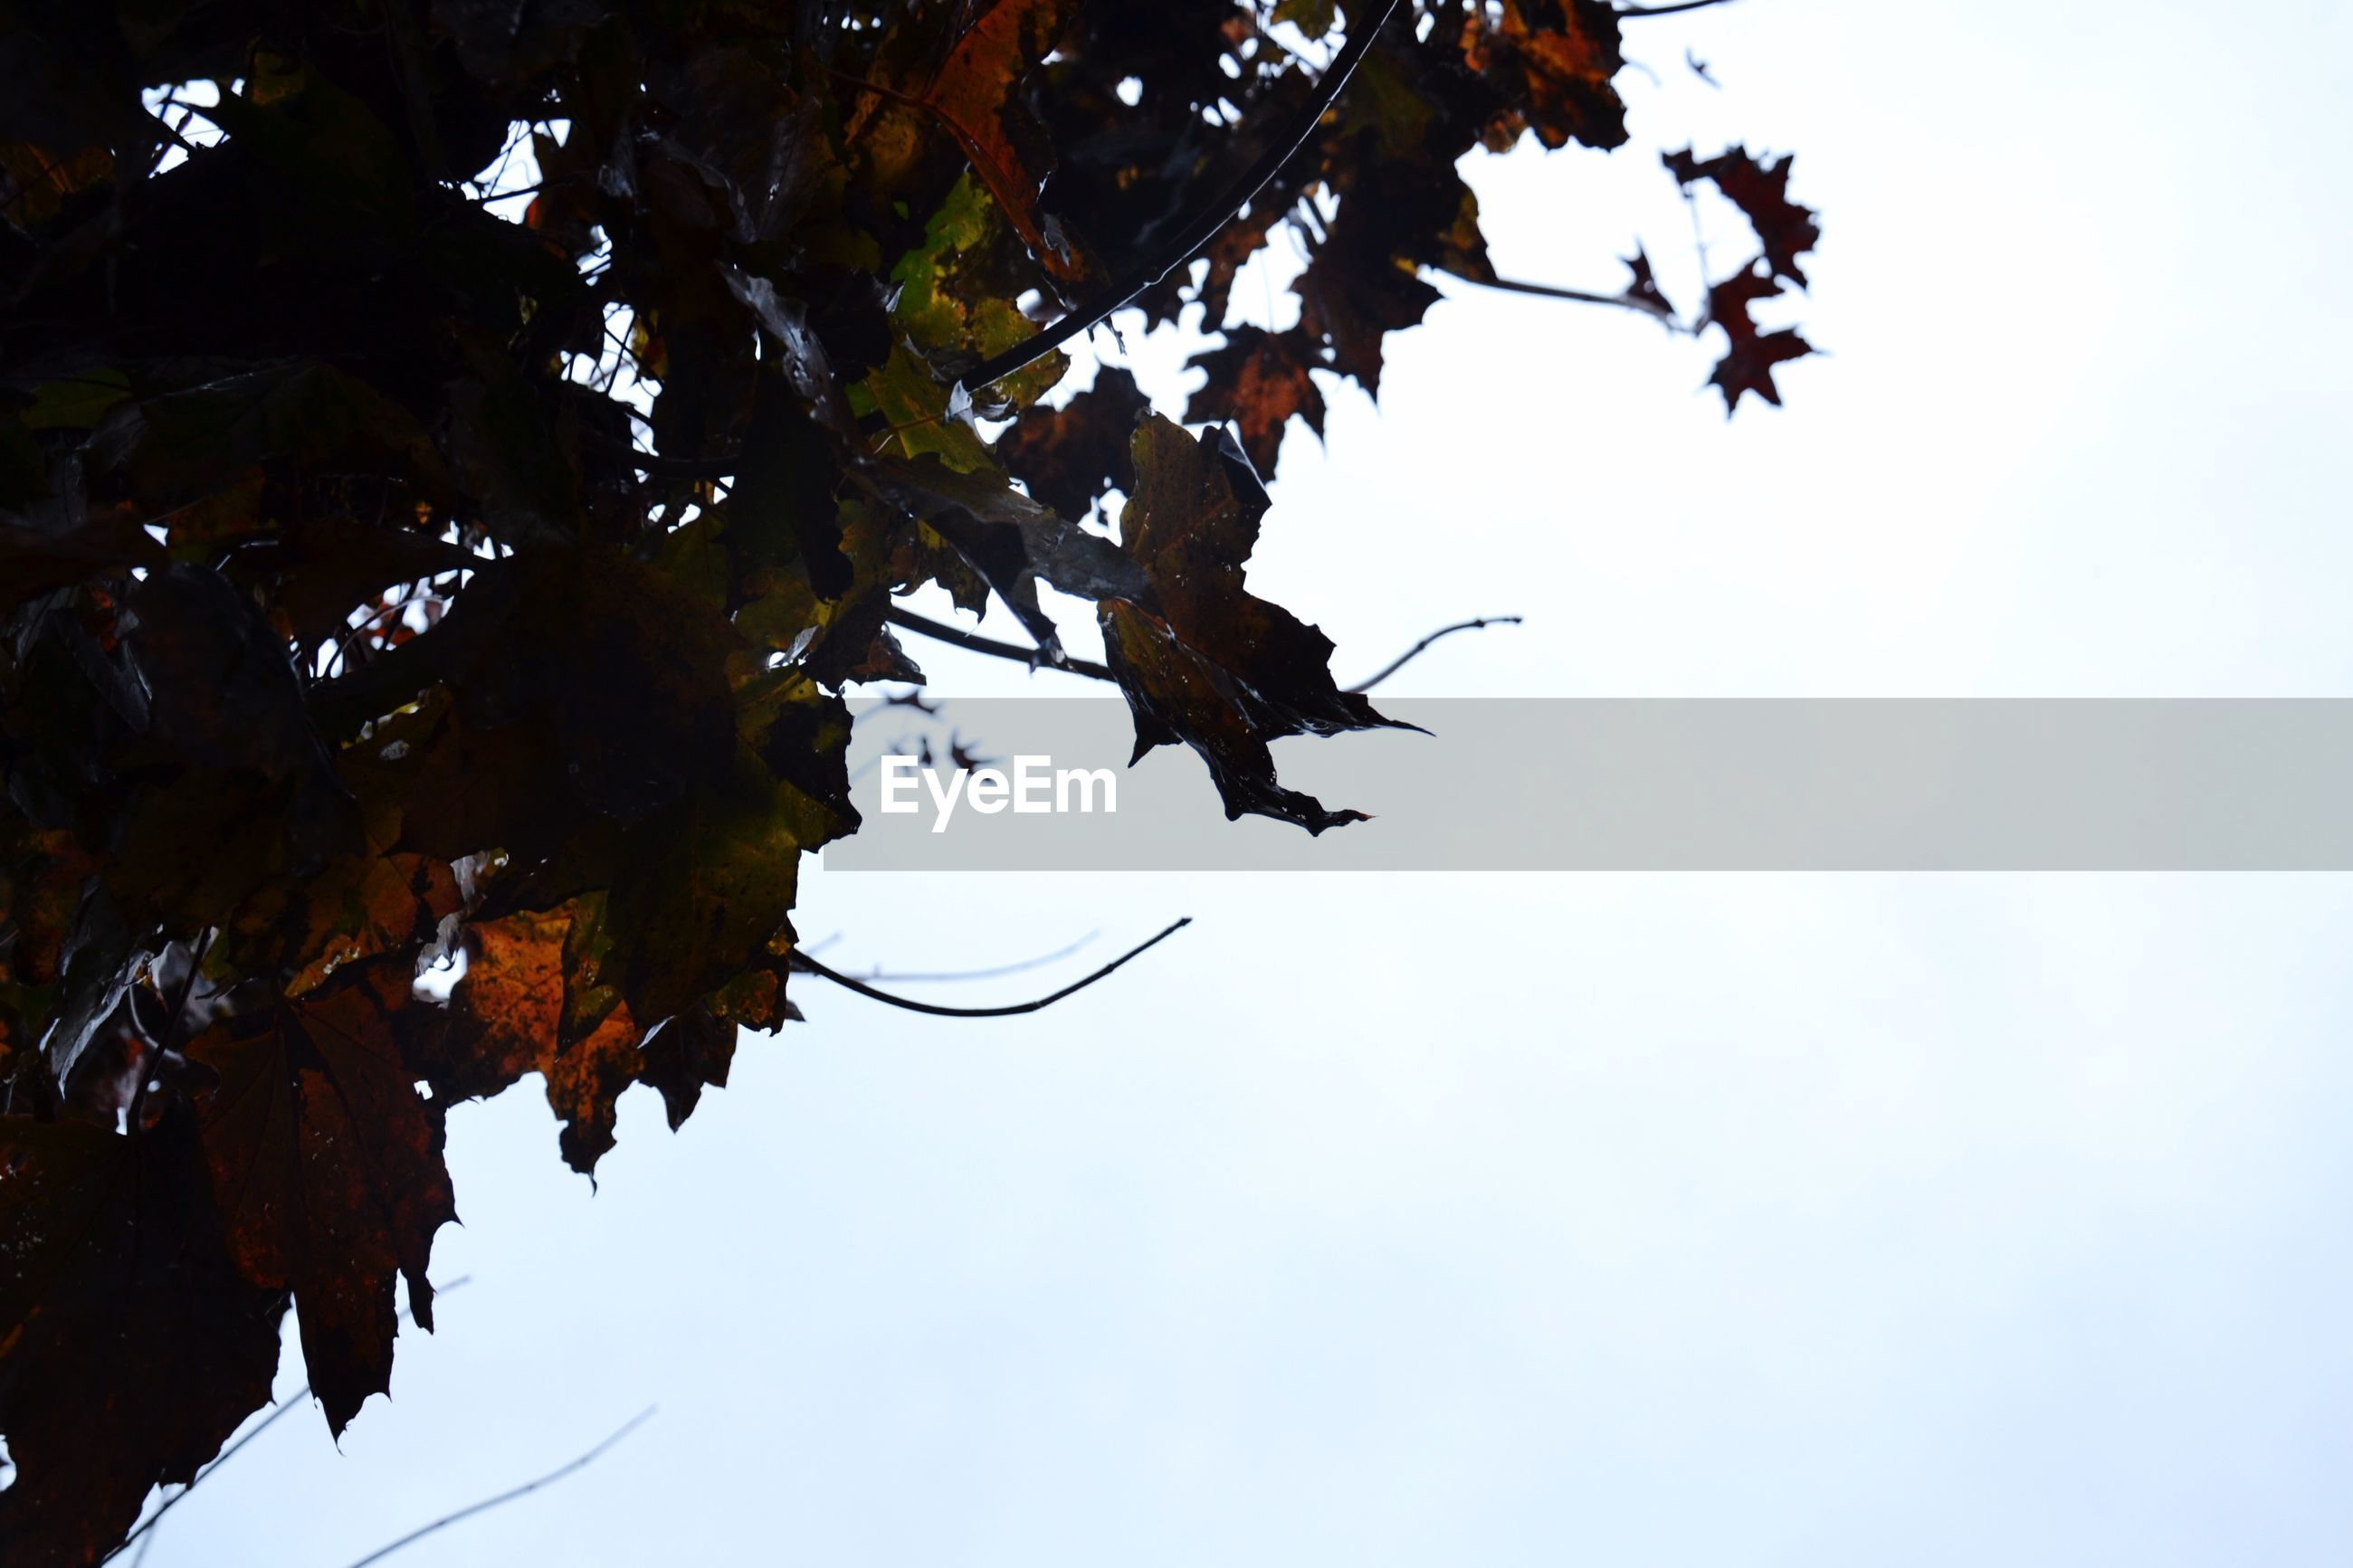 low angle view, tree, branch, sky, growth, nature, leaf, beauty in nature, clear sky, tranquility, silhouette, outdoors, day, no people, scenics, high section, blue, sunlight, treetop, twig